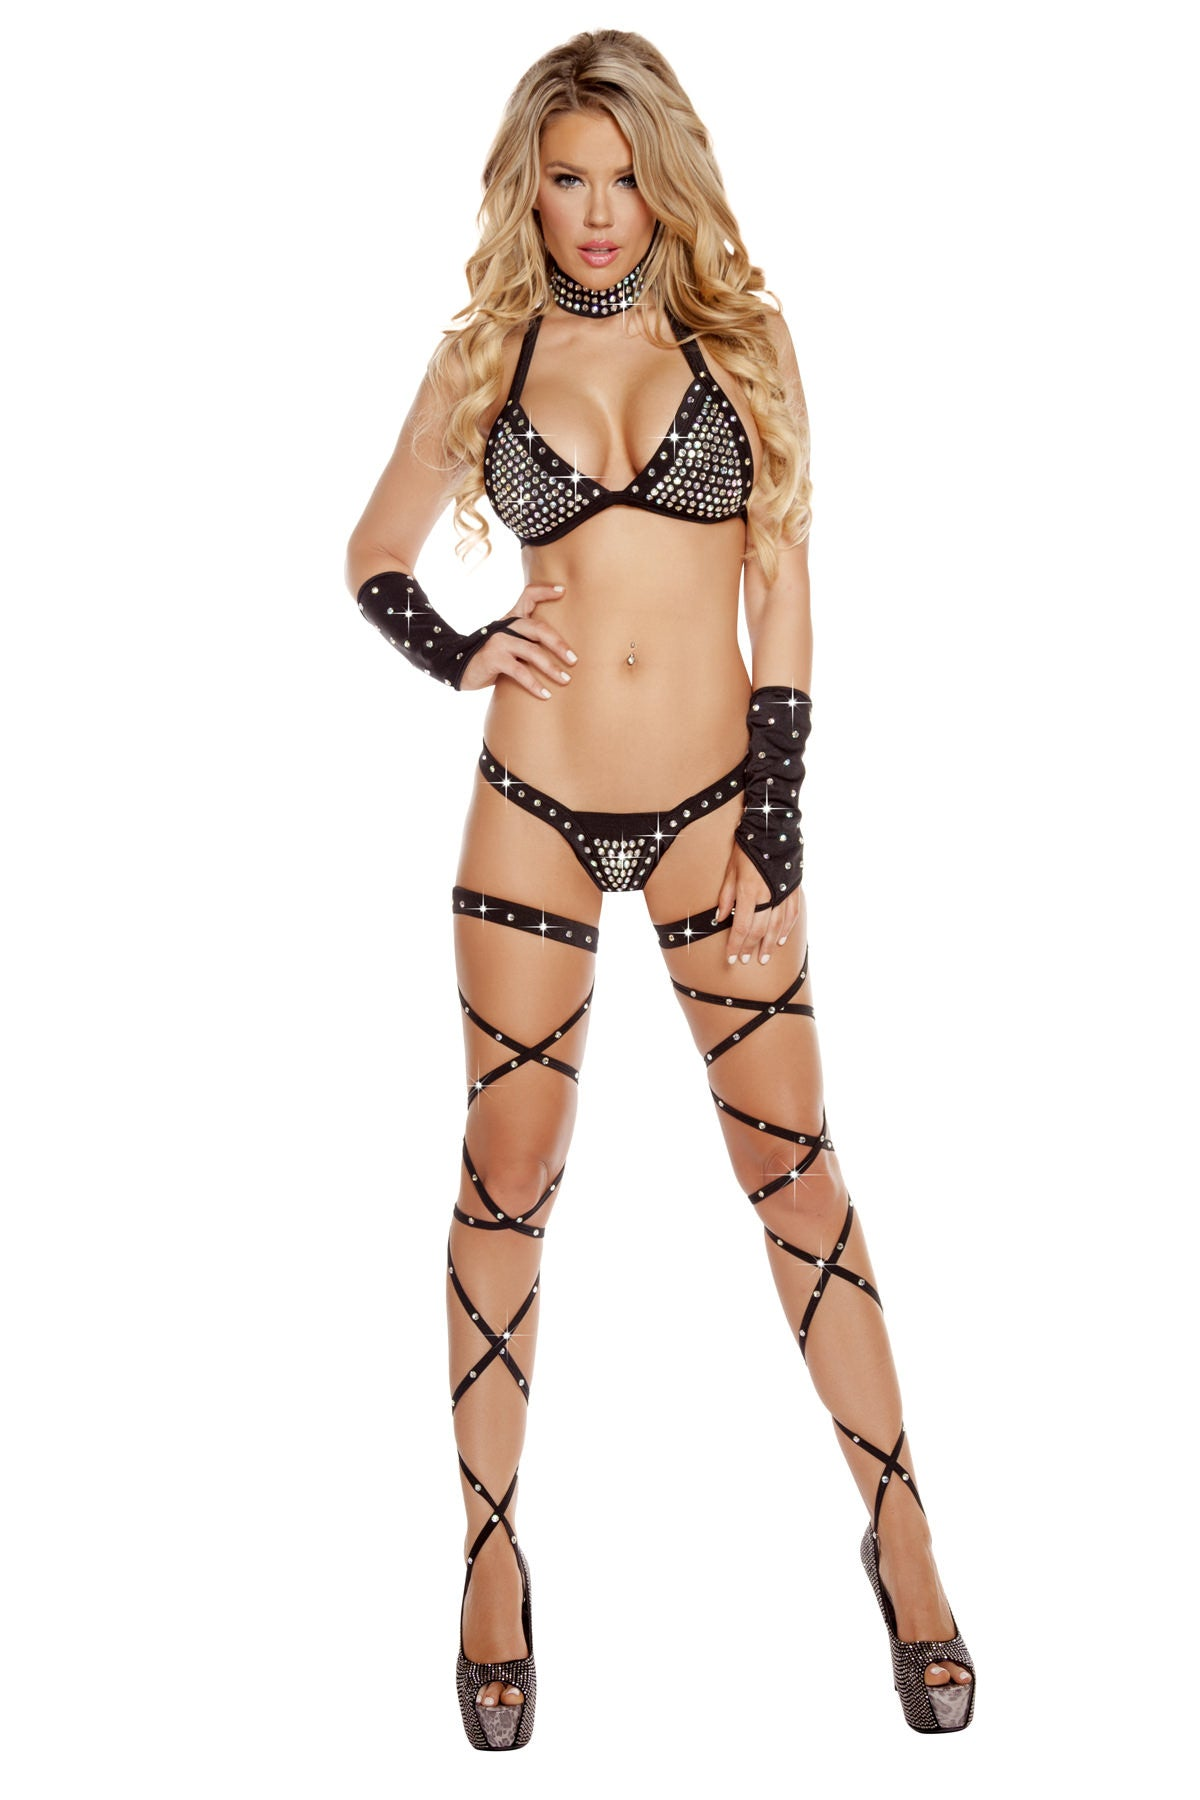 3206 - Thong Back Bikini Set with Rhinestones ${description} | Roma Costume and Roma Confidential wholesale manufacturer of Women Apparel bulk world wide wholesale and world wide drop ship services for Adult Halloween Costumes, Sexy and Elegant Lingerie, Rave Clothing, Club wear, and Christmas Costumes. Rhinestone Outfits,bikini sets, Roma Costume, Inc., Roma Costume, Roma Confidential, Wholesale clothing, drop ship, drop ship service, Wholesale Lingerie, Wholesale Adult Halloween Costumes, Rave Clothing, EDM Clothing, Festival Wear, Christmas Costumes, Clubwear, Club wear.